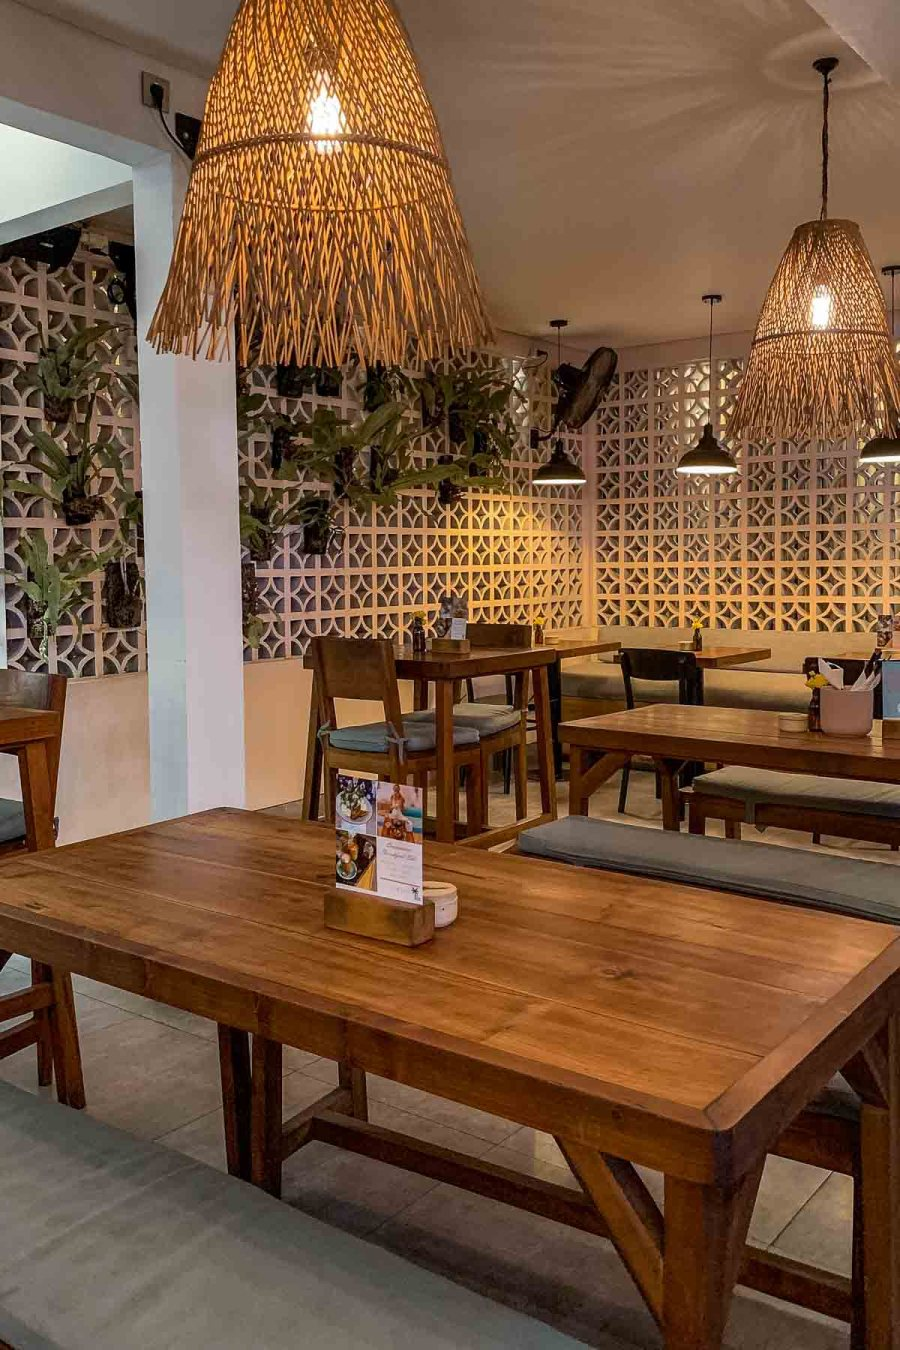 Inside eating area at Common Cafe in Canggu, Bali